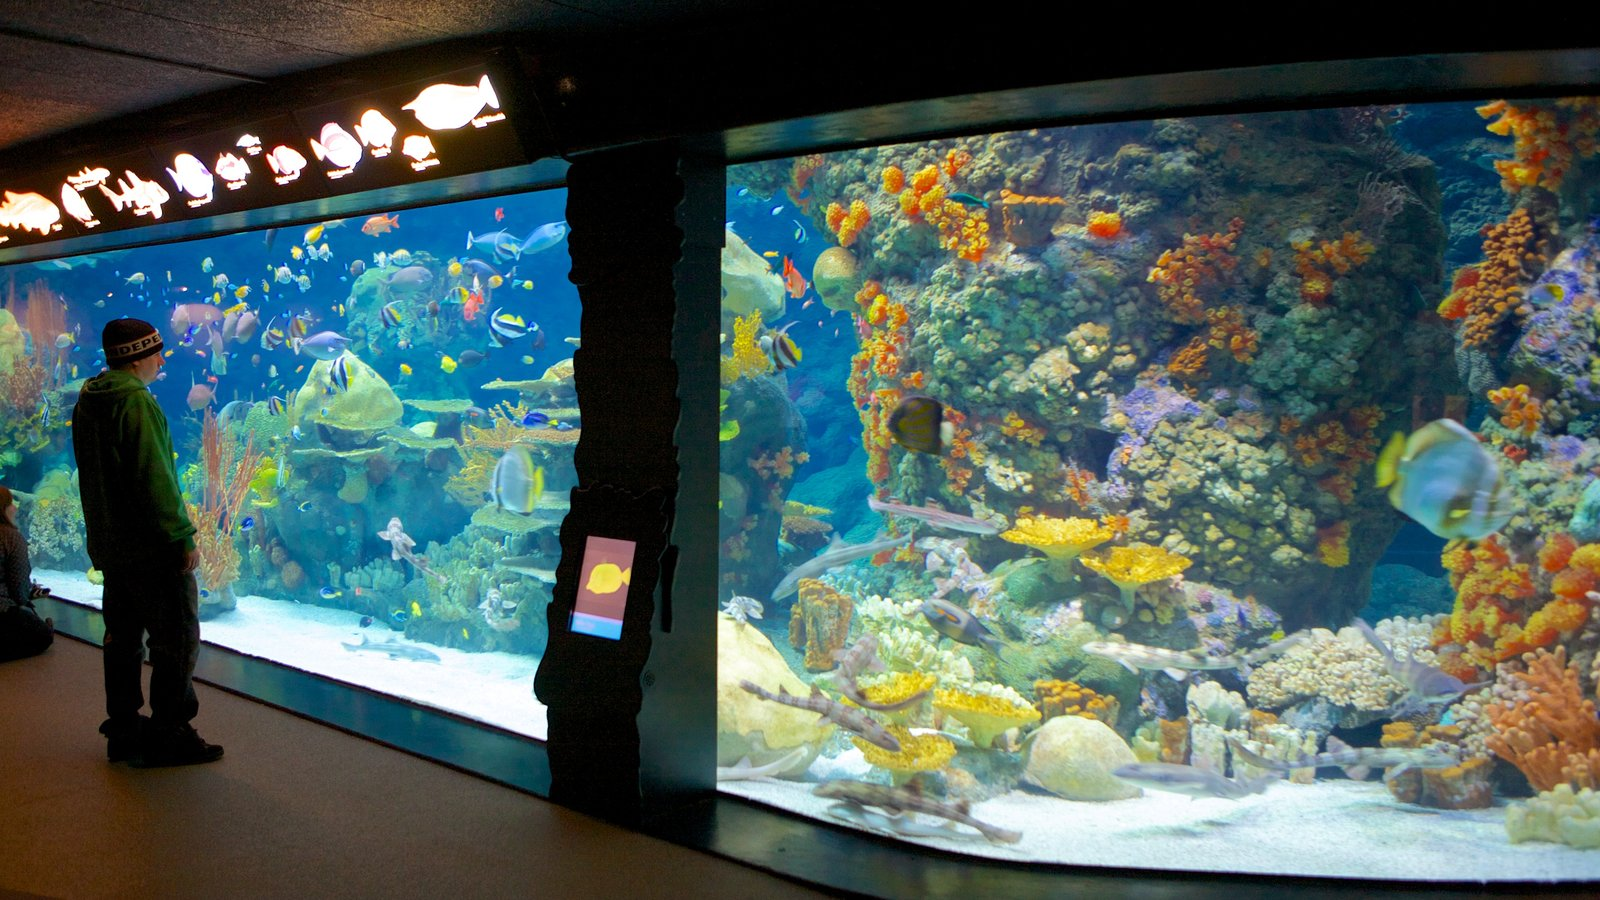 Minnesota Zoo which includes zoo animals, marine life and colorful reefs